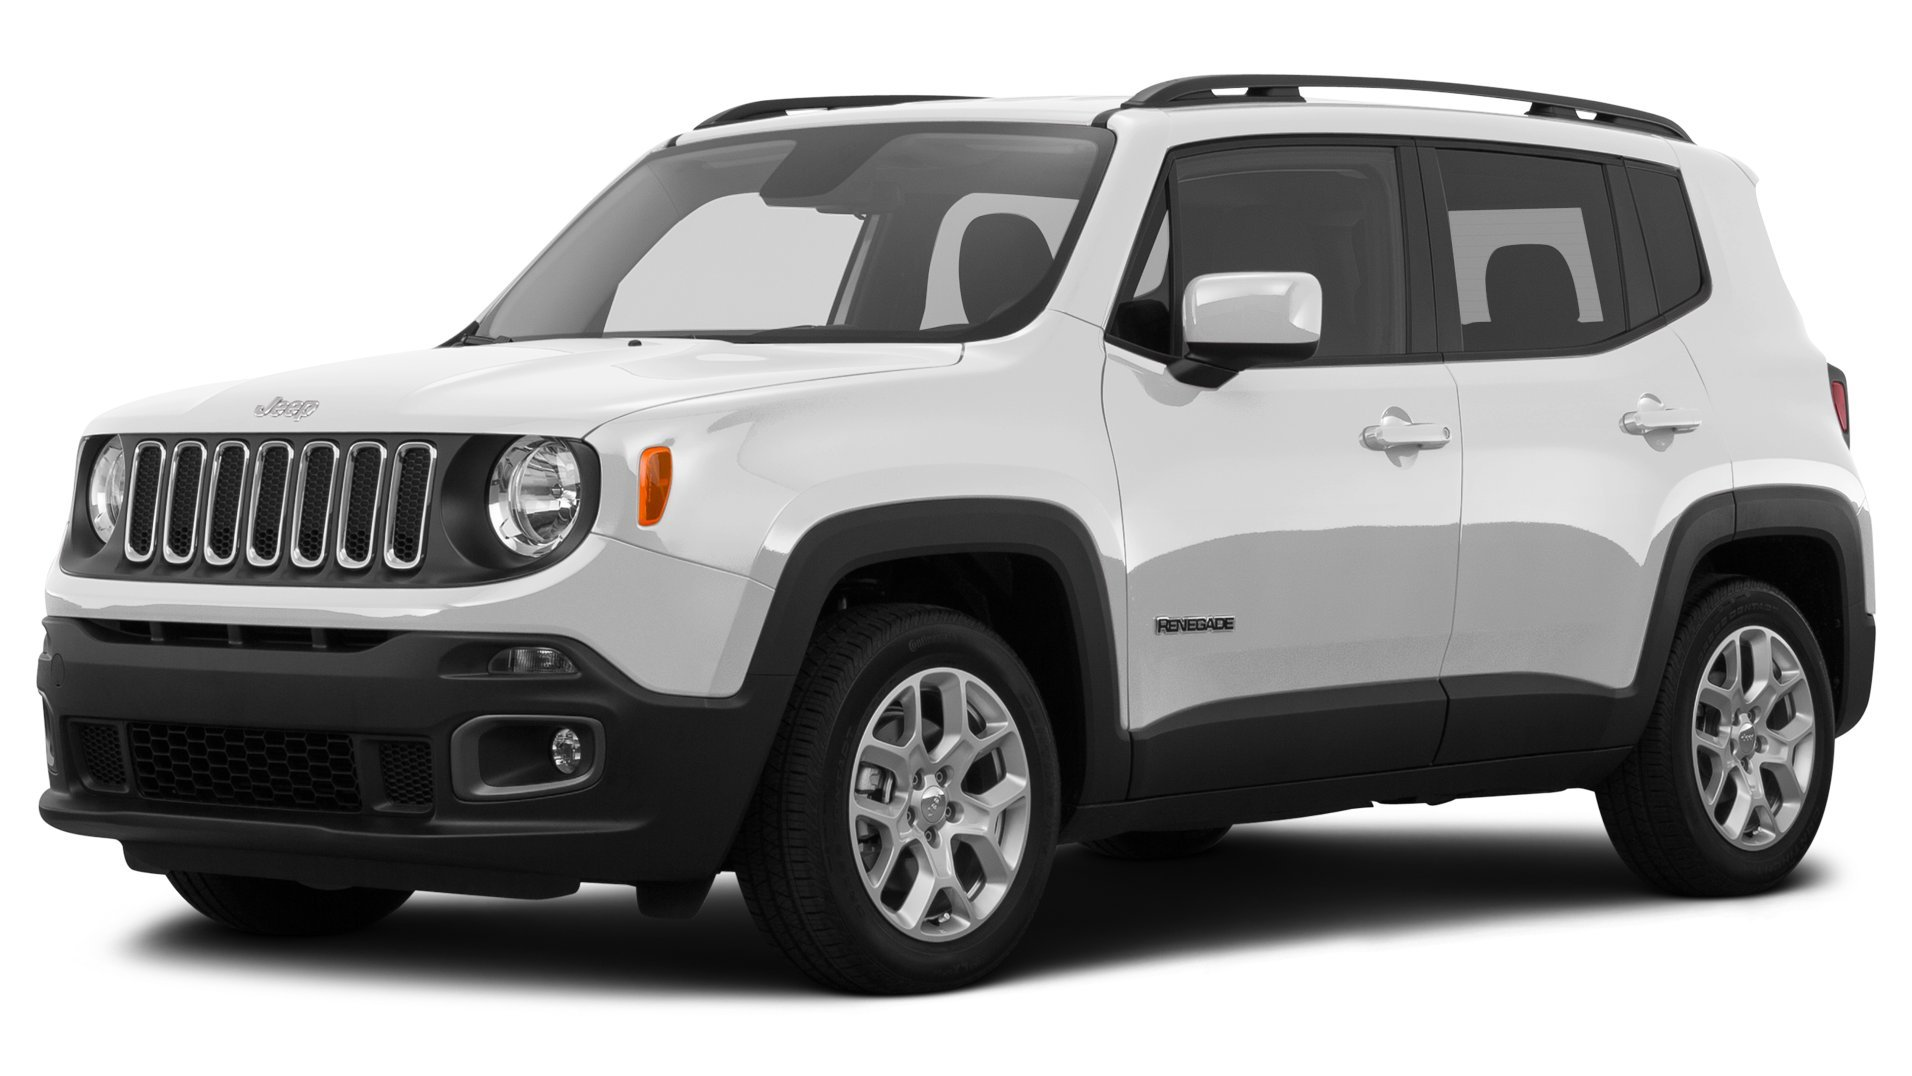 2015 jeep renegade reviews images and specs. Black Bedroom Furniture Sets. Home Design Ideas